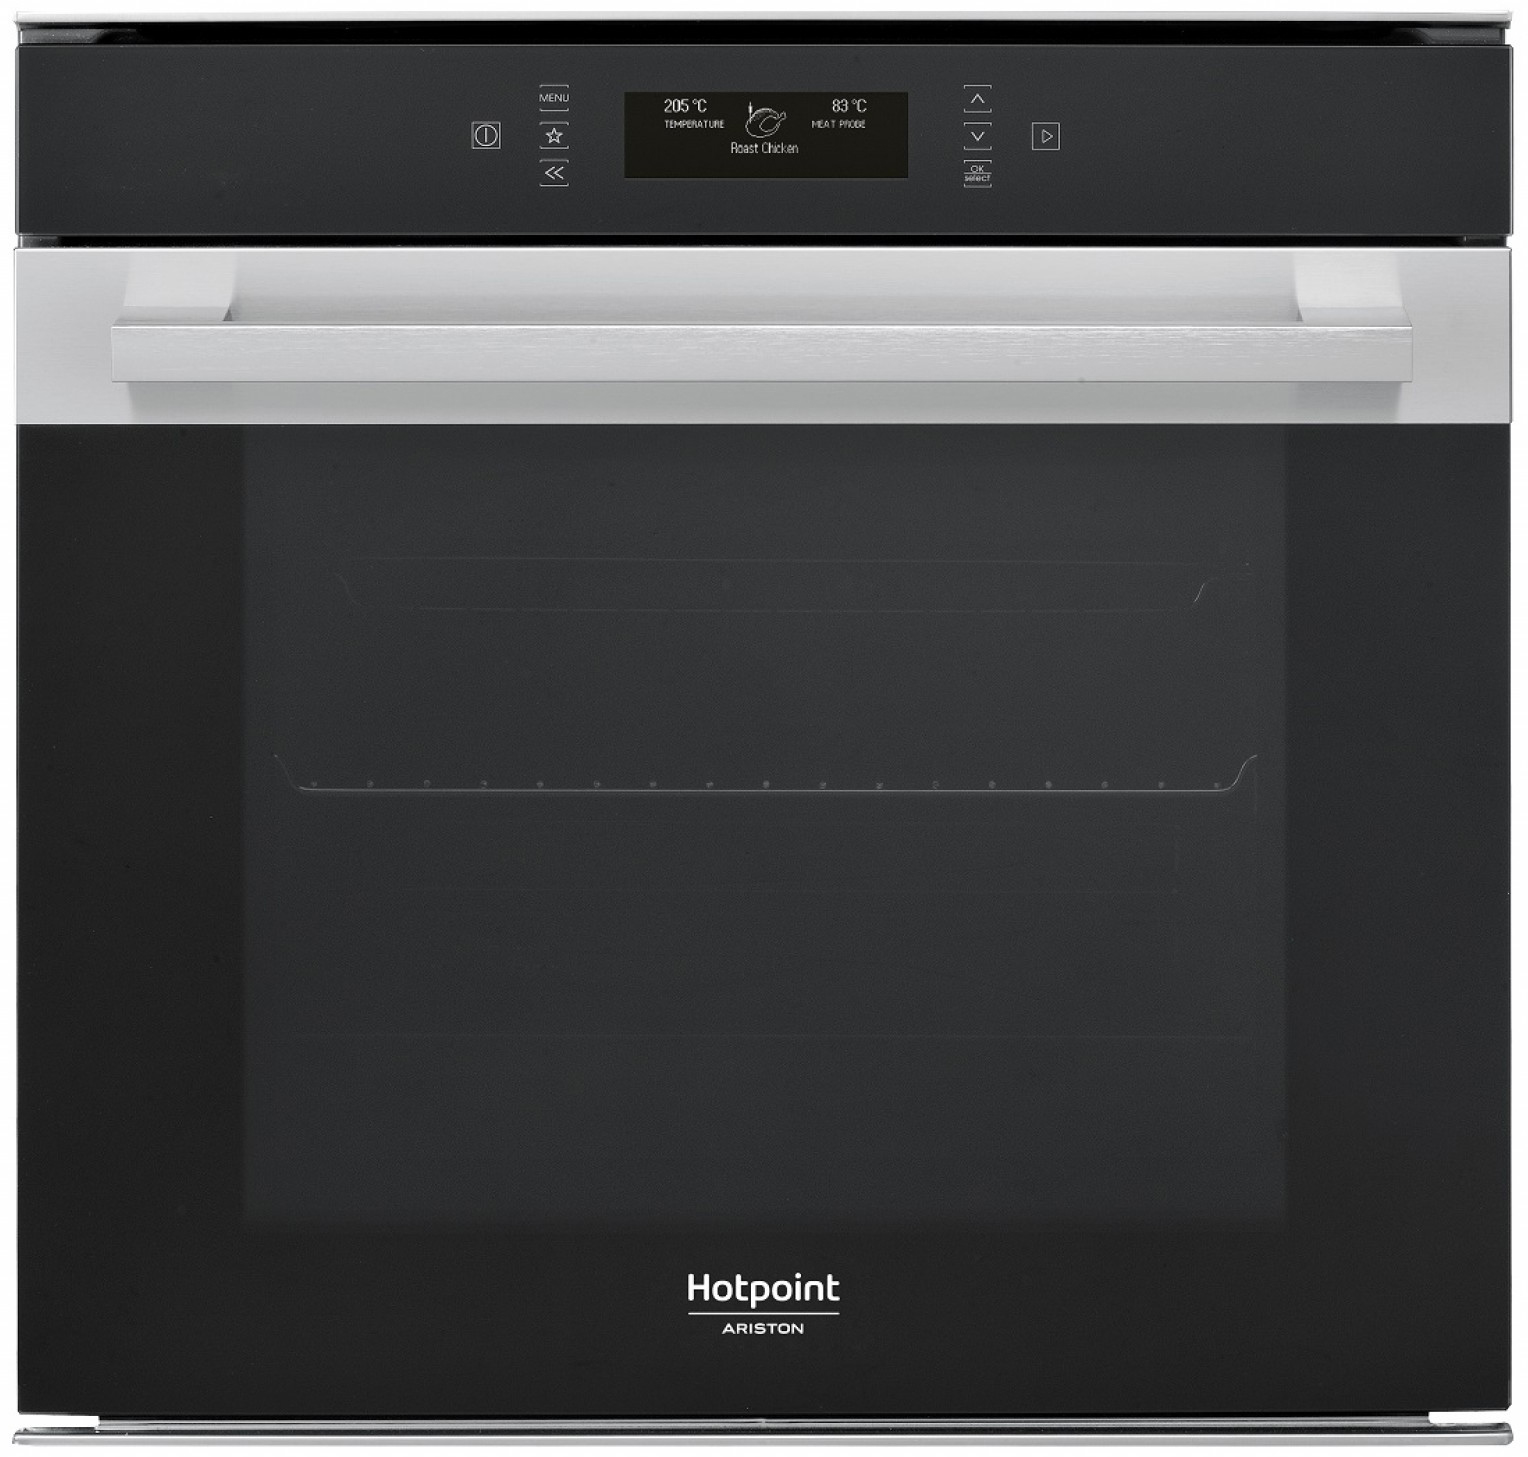 Духовой шкаф Hotpoint-Ariston не держит температуру